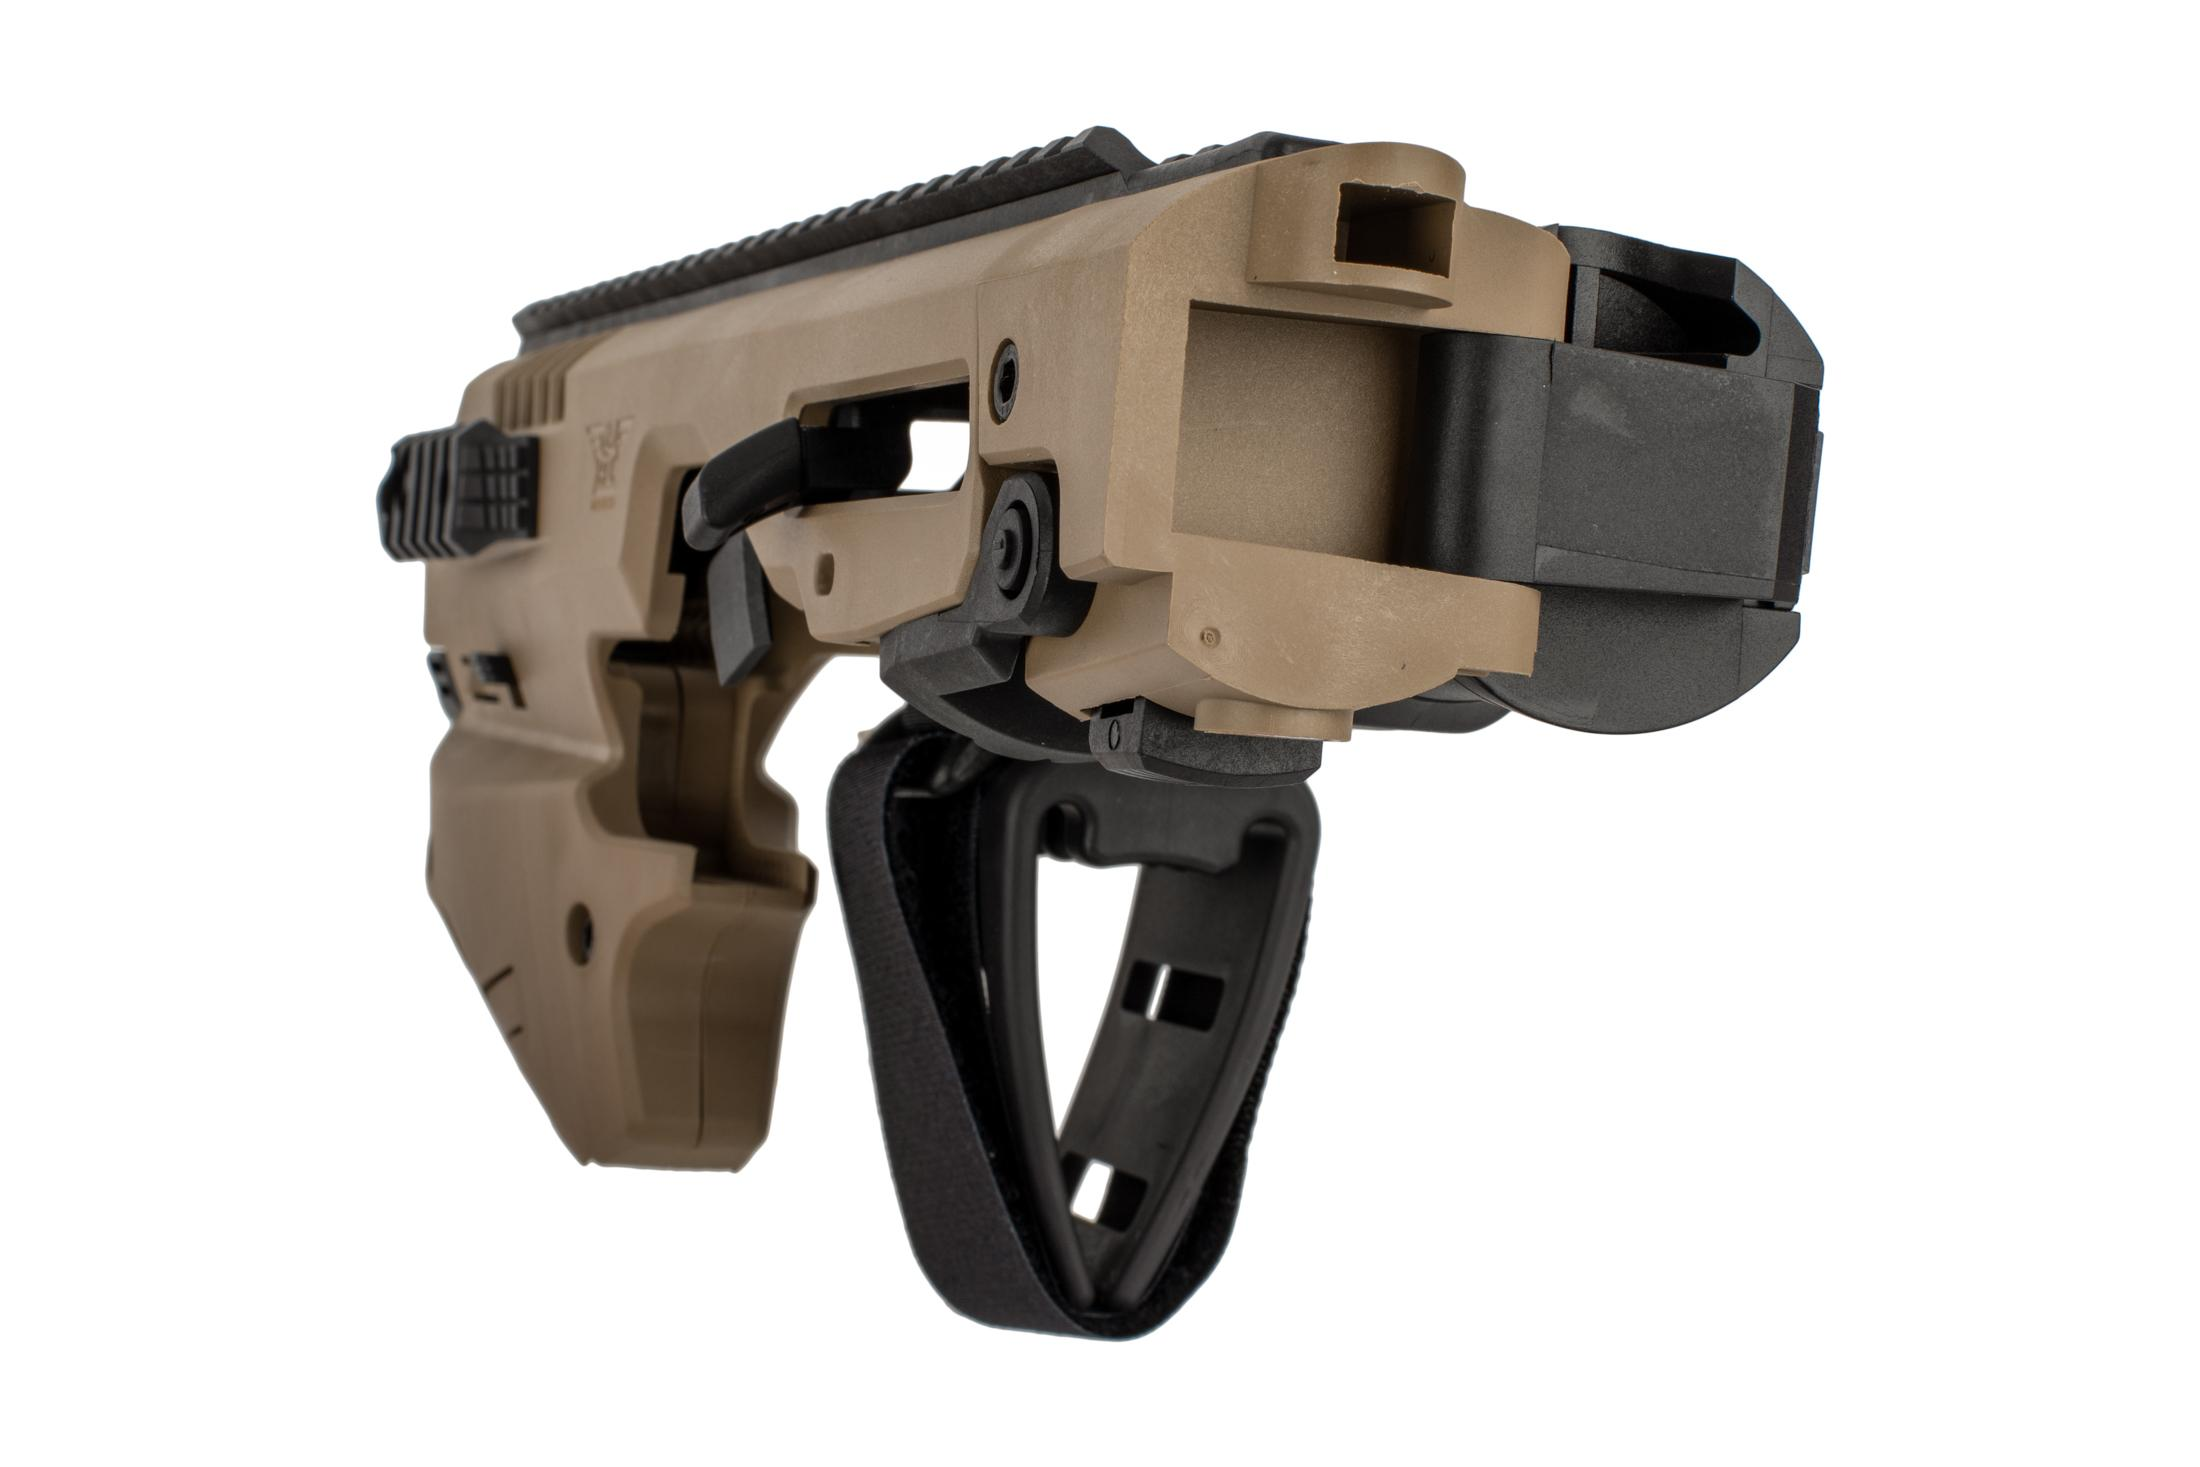 Command Arms Micro Conversion Kit for Glocks offers a side folding long stabilizer in FDE